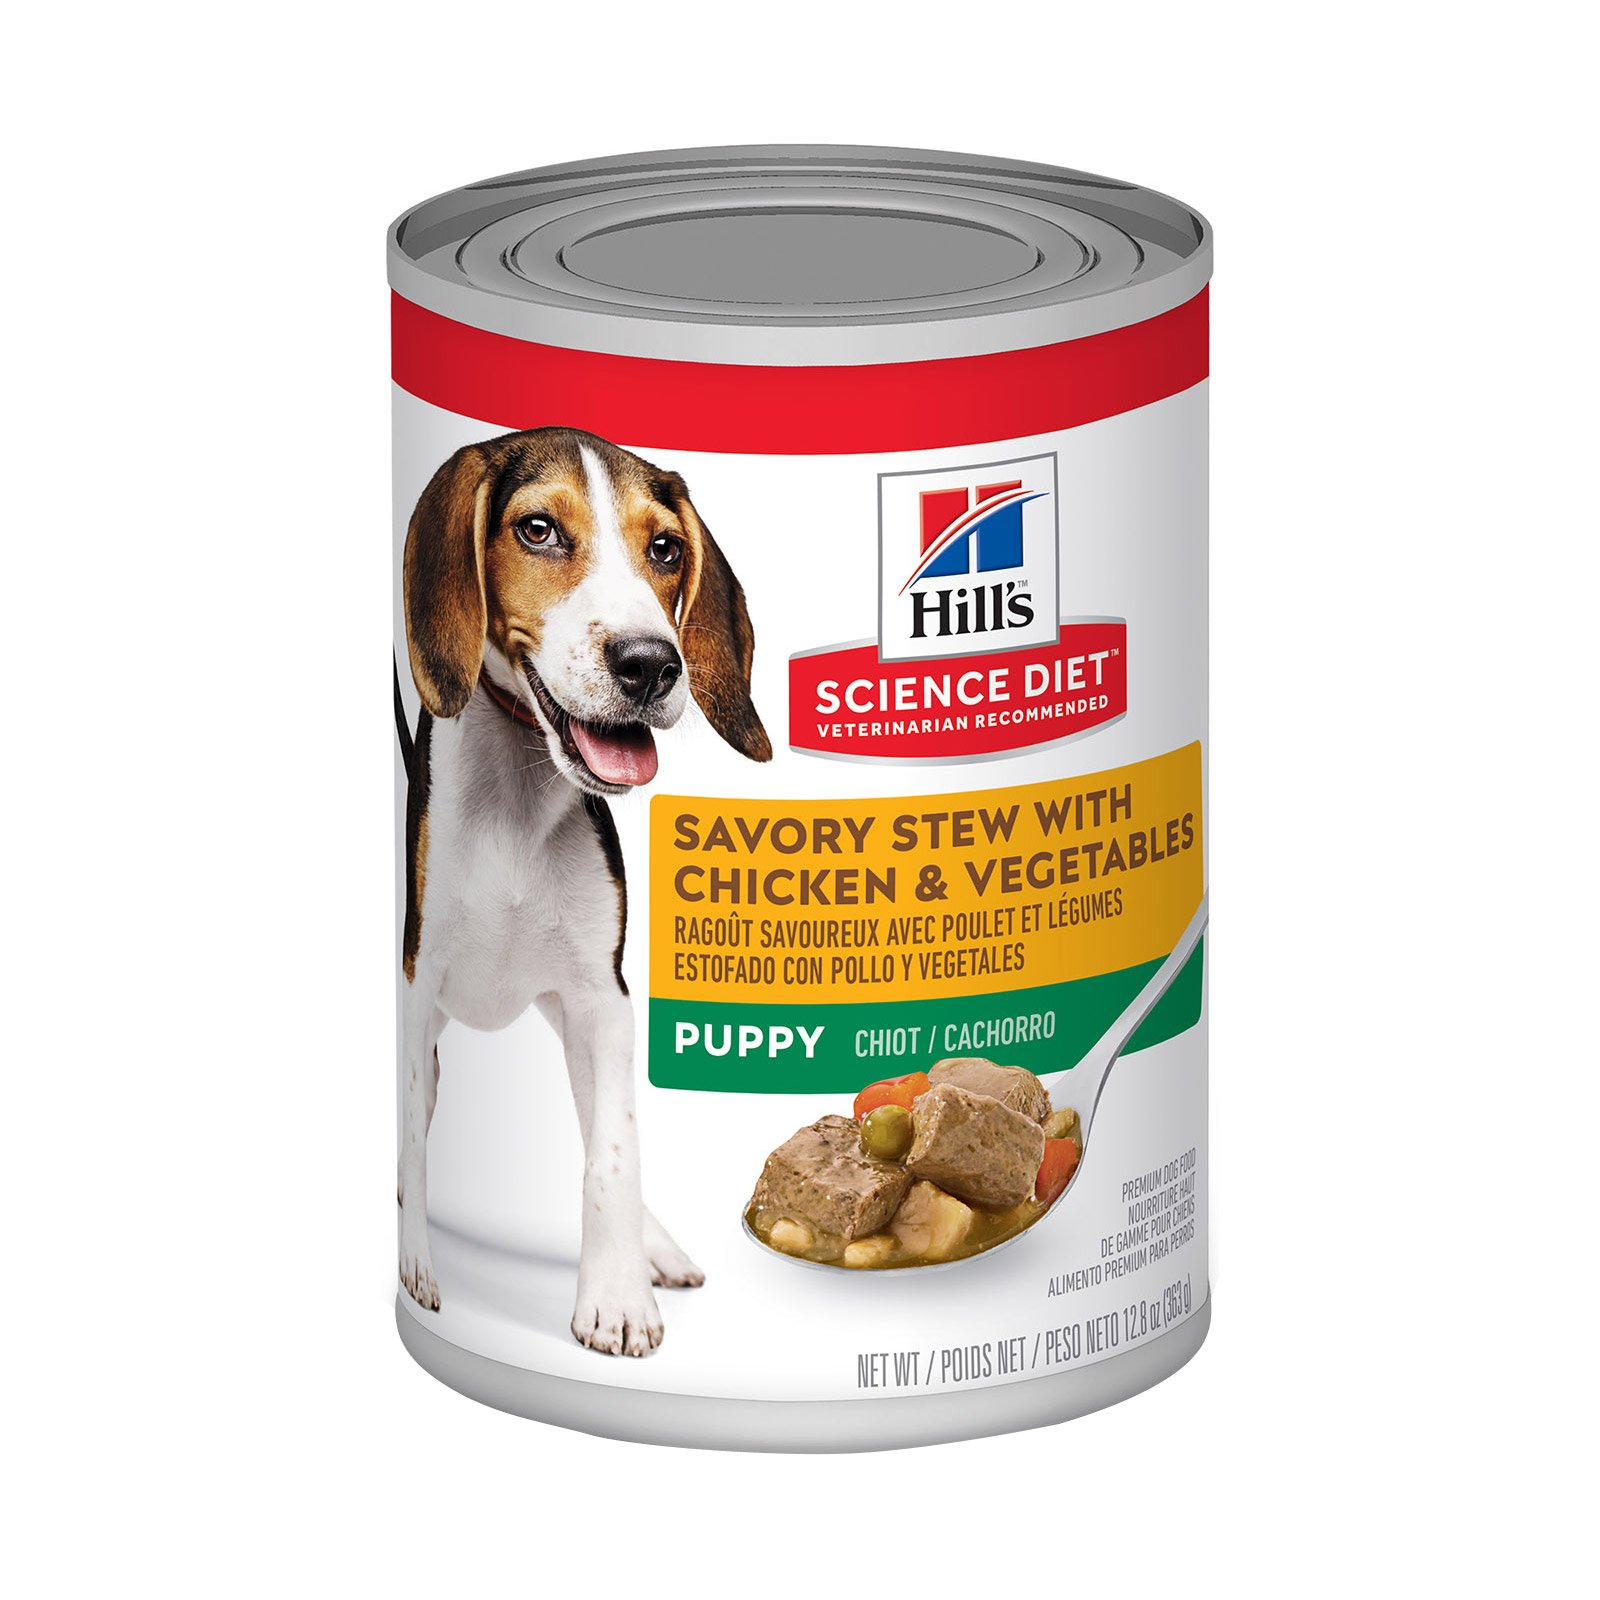 636943209841463296Hills-Science-Diet-canine-savory-stew-puppy-chicken-veg-canned.jpg